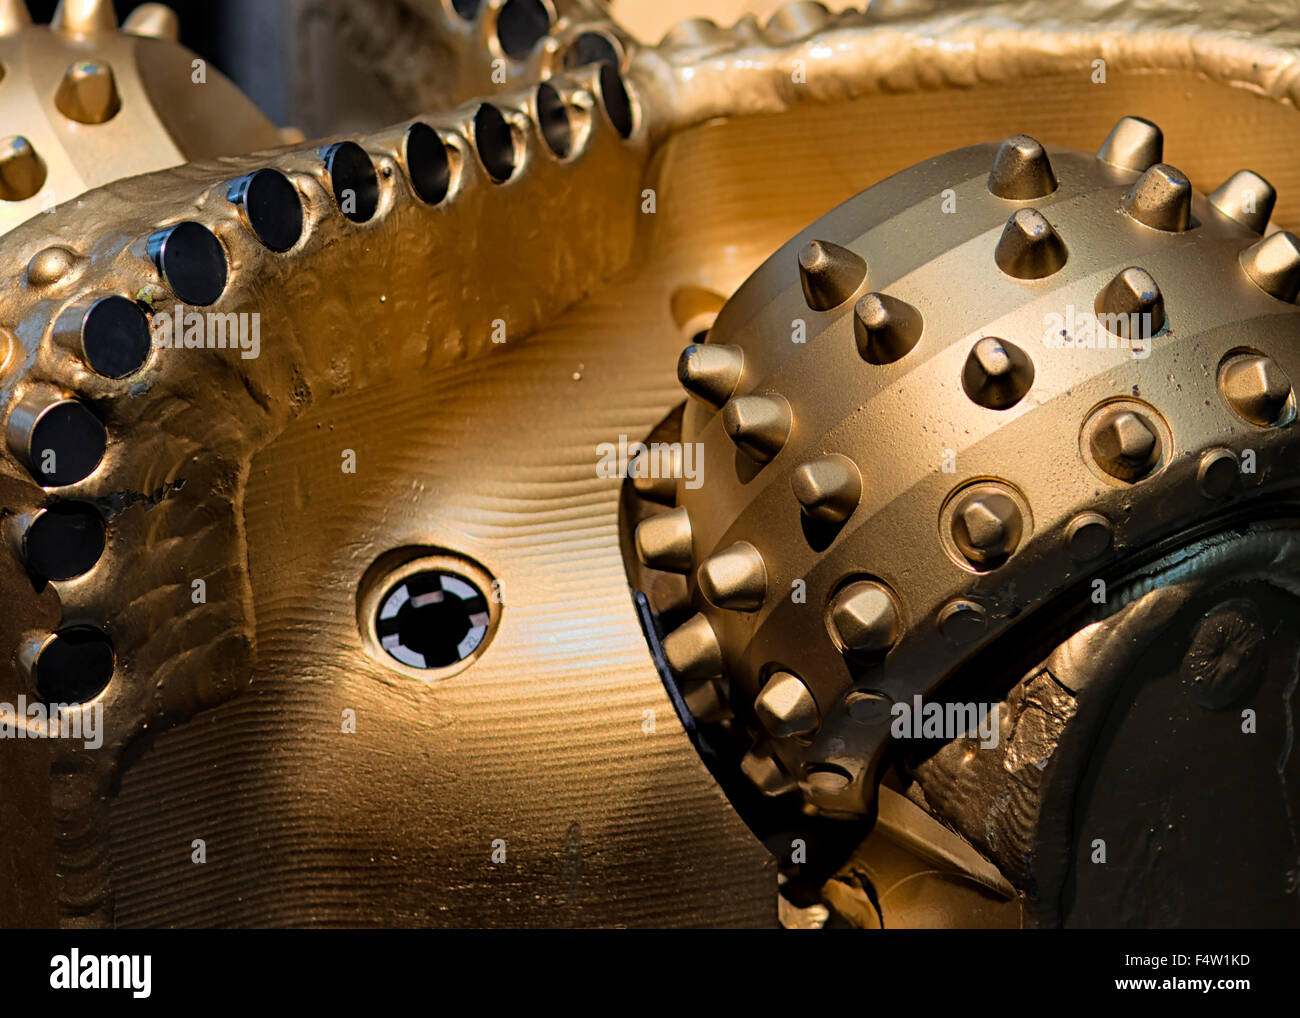 PDC Drill Bit with Synthetic Diamonds at Oil Museum in Stavanger, Norway - Stock Image